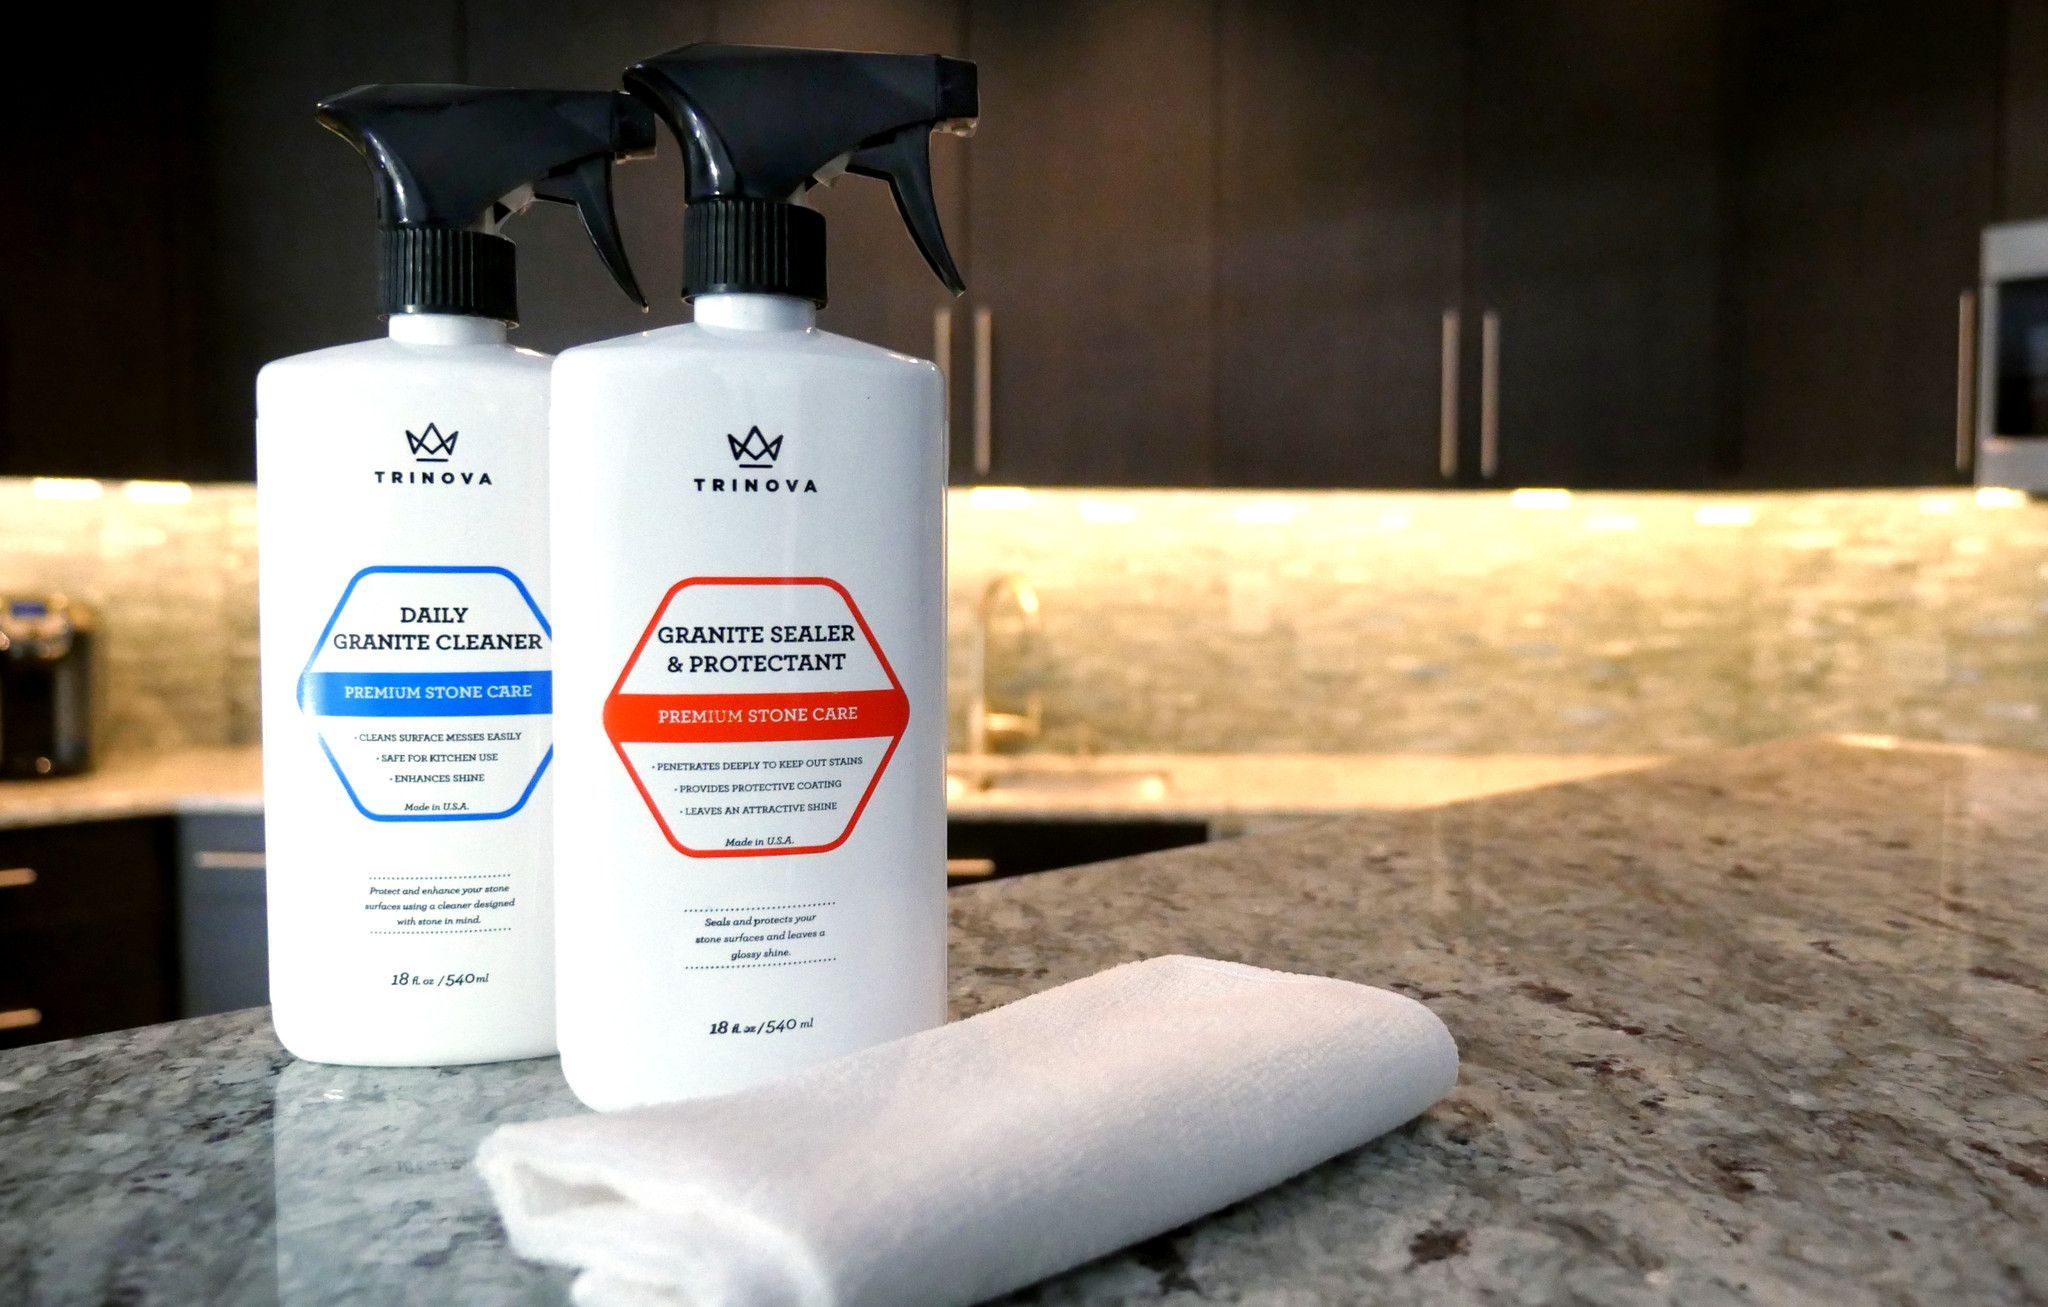 Grout Sealer Also Known As Grout Sealer Is A Product That Is - Best way to apply grout sealer